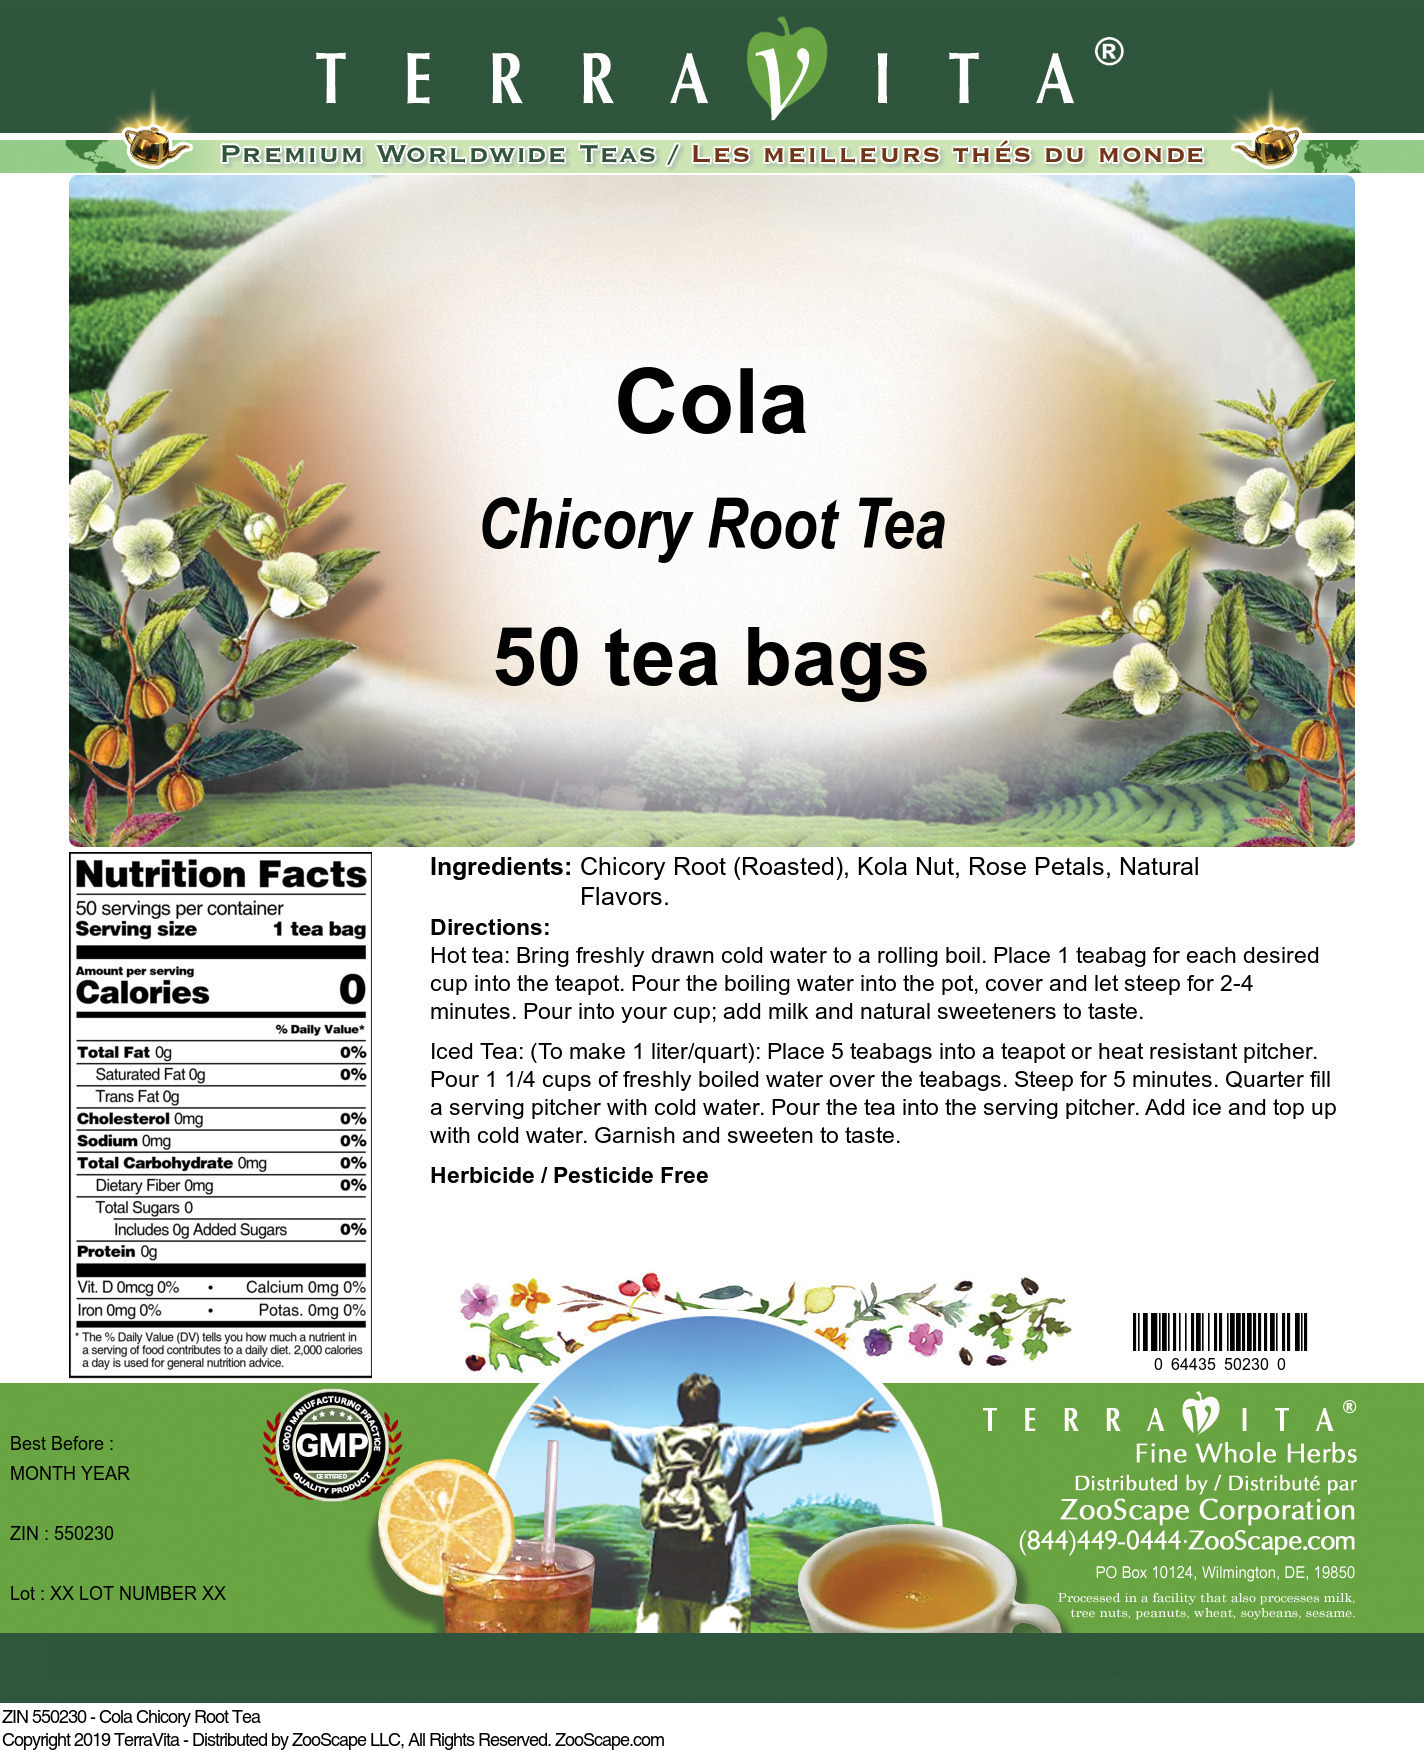 Cola Chicory Root